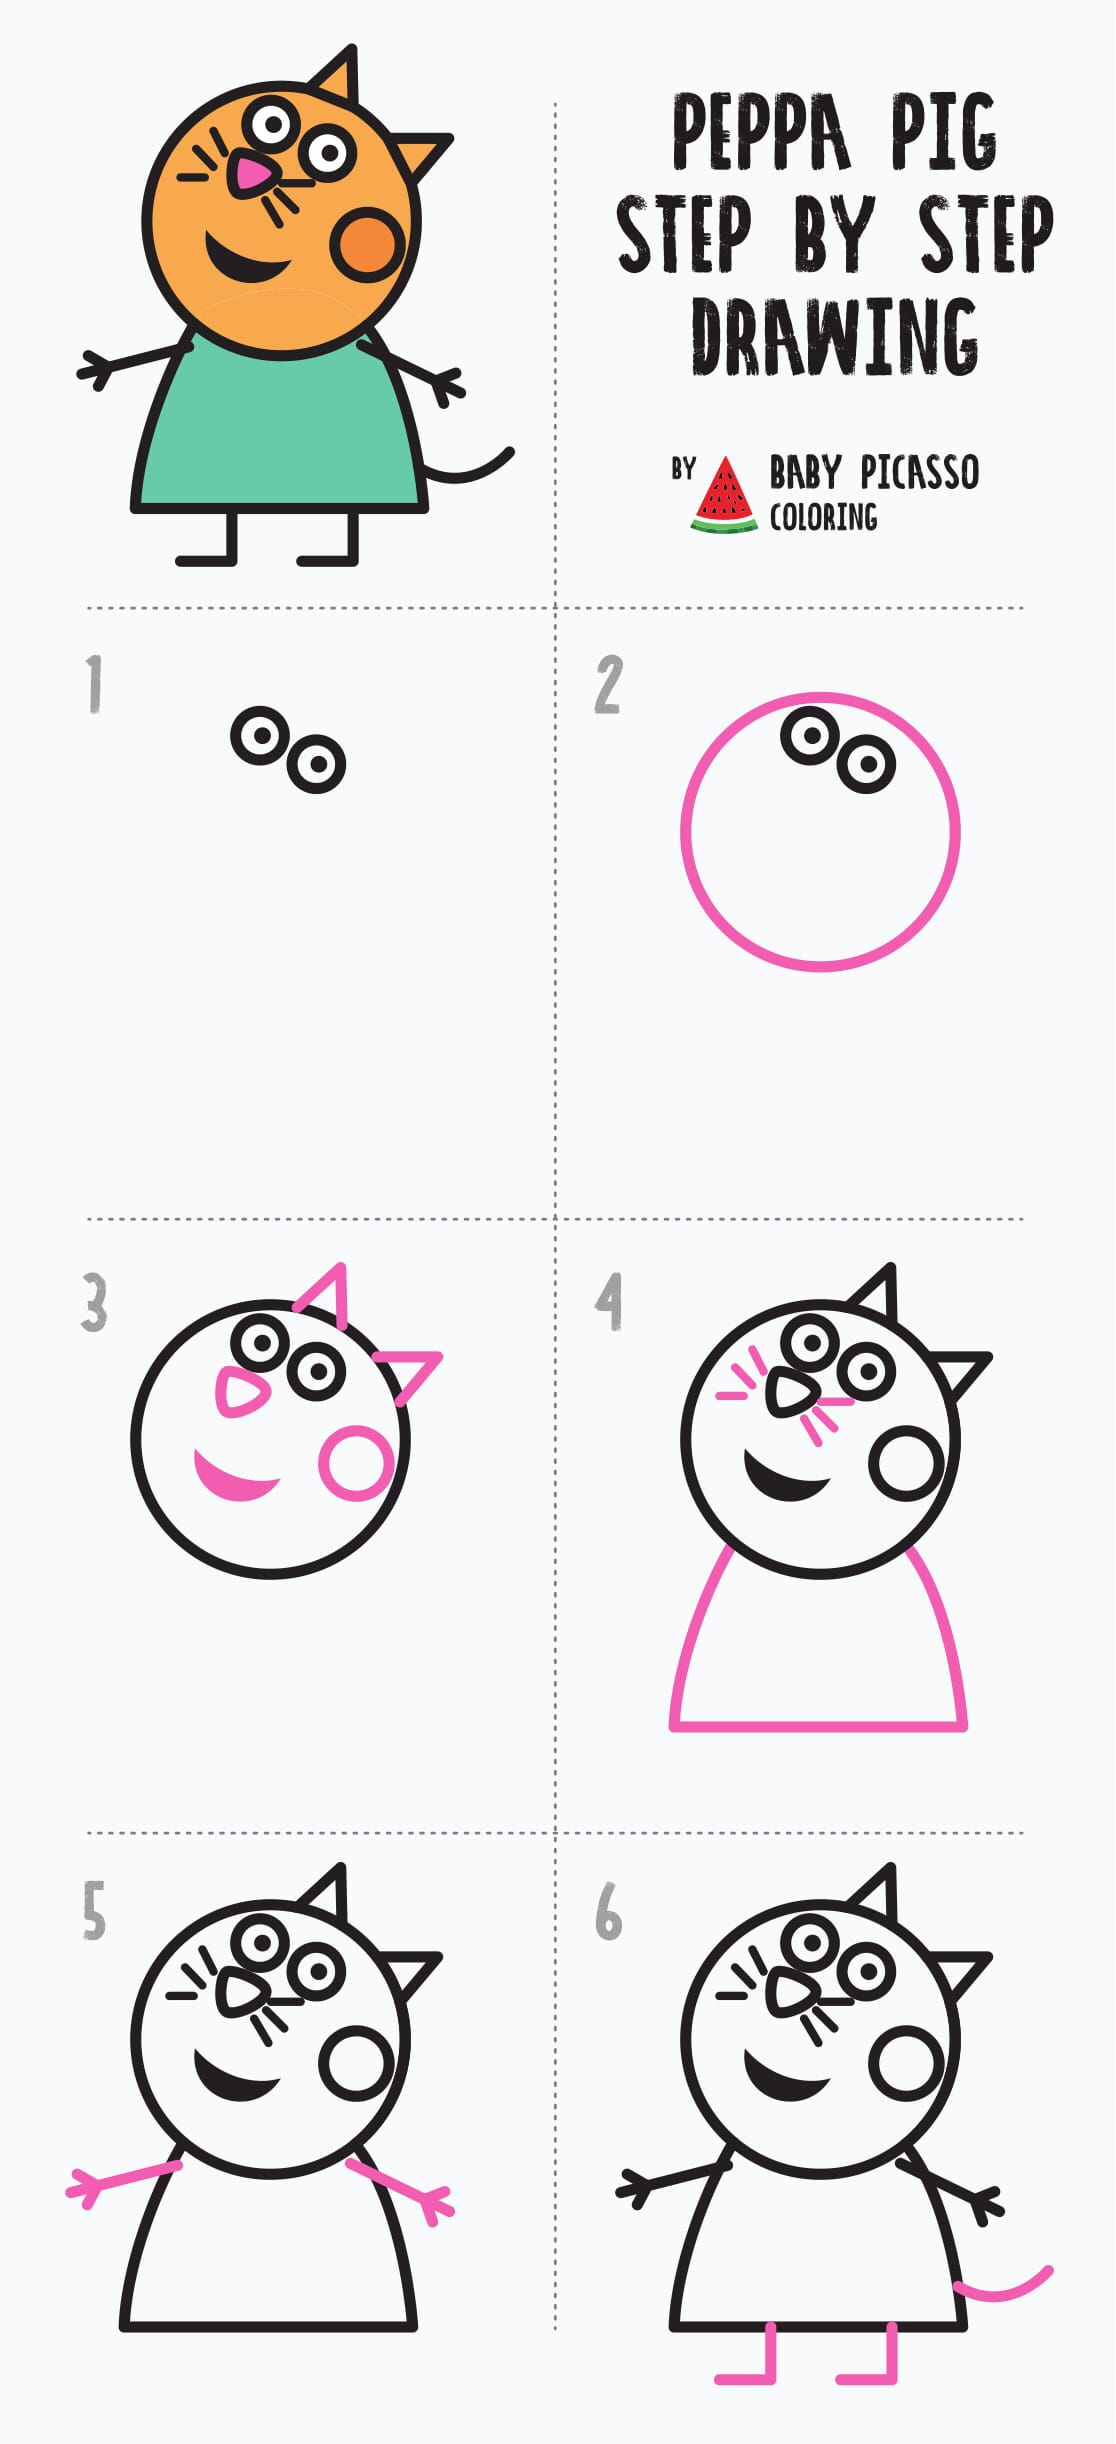 How To Draw Candy Cat Peppa Pig Drawing And Coloring Pages Peppa Pig Drawing Peppa Pig Coloring Pages Peppa Pig Colouring